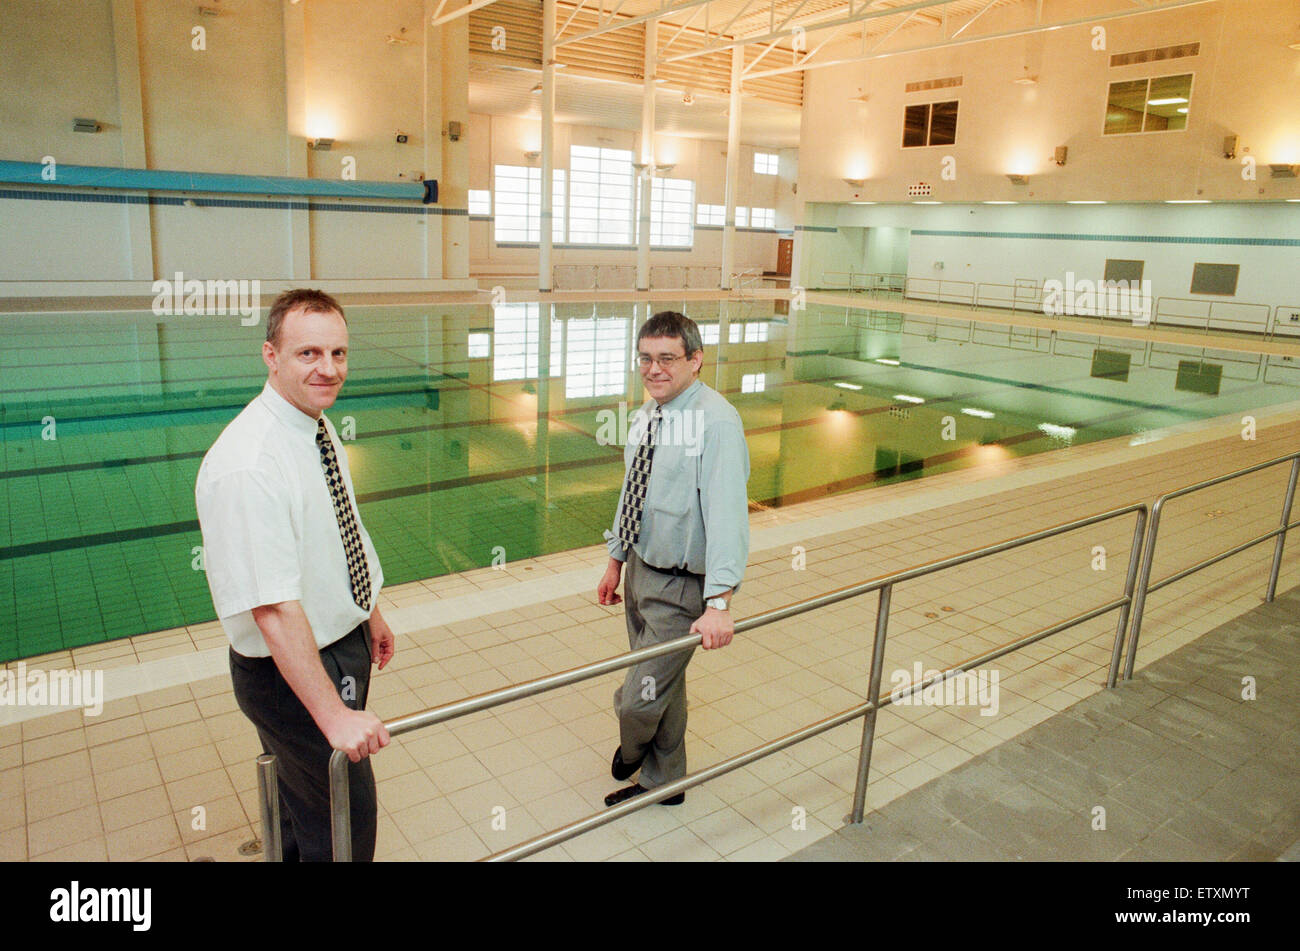 Berwick Hills New 25 Metre Pool At The Neptune Centre Middlesbrough Stock Photo Royalty Free